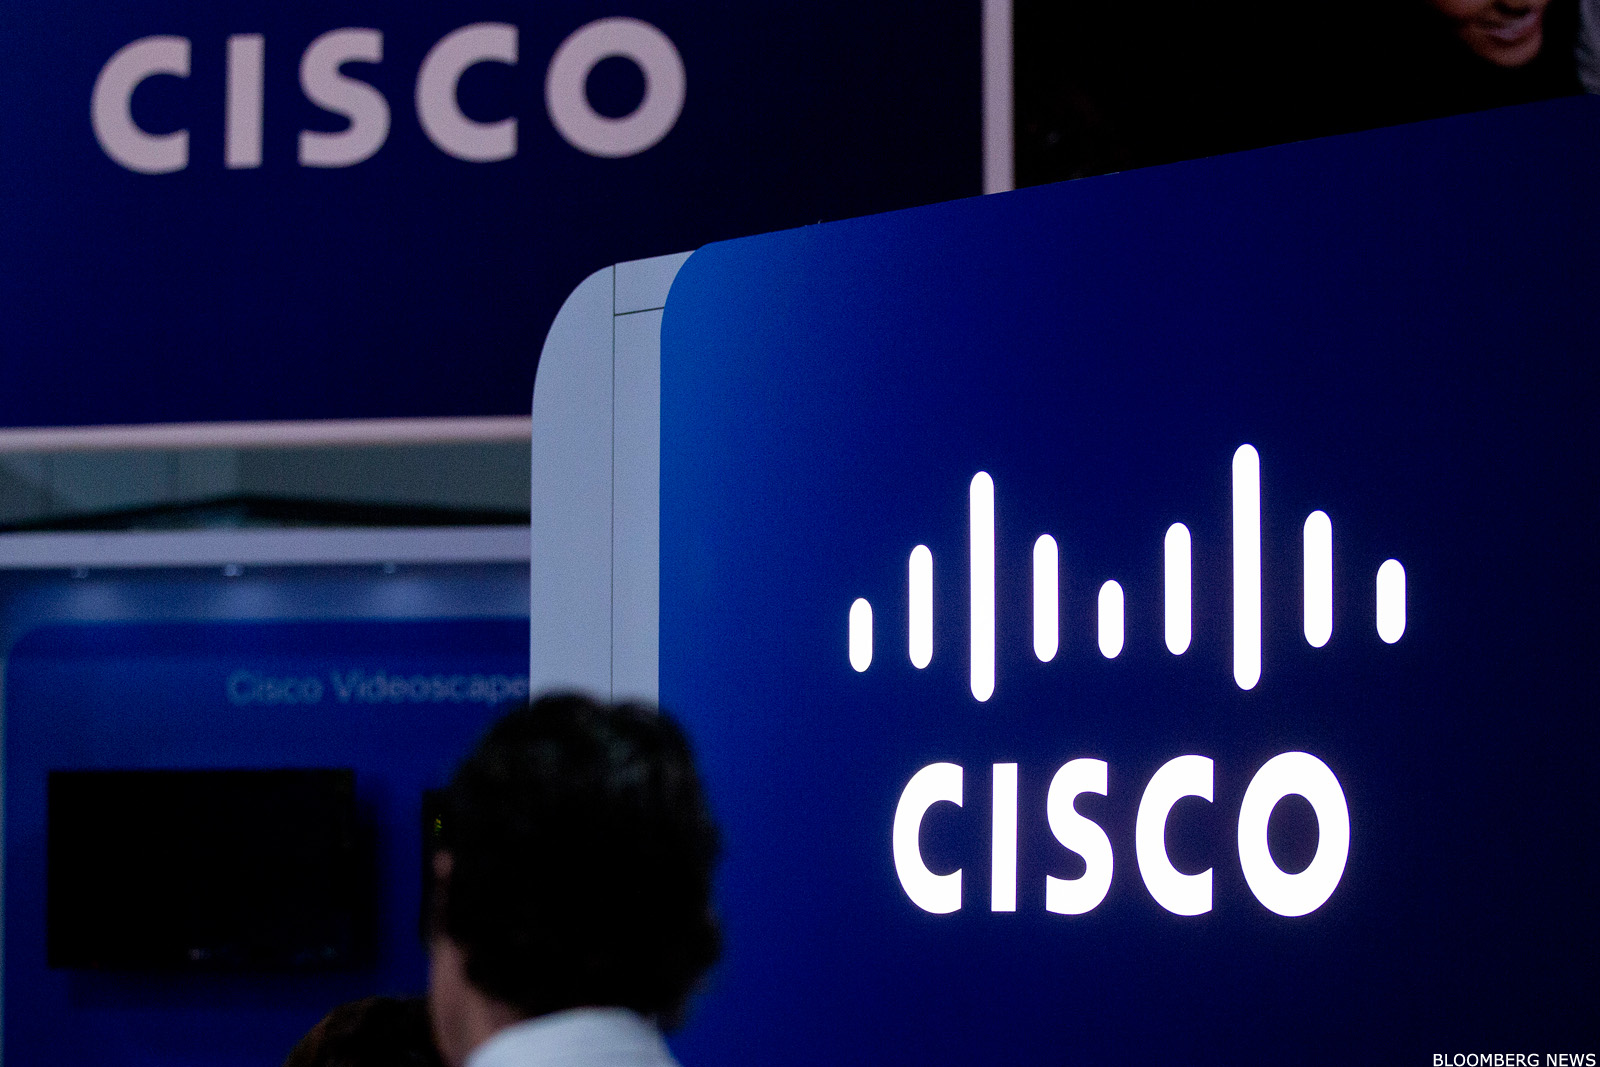 Cisco Plummets After Weak Guidance, Layoffs: What Wall